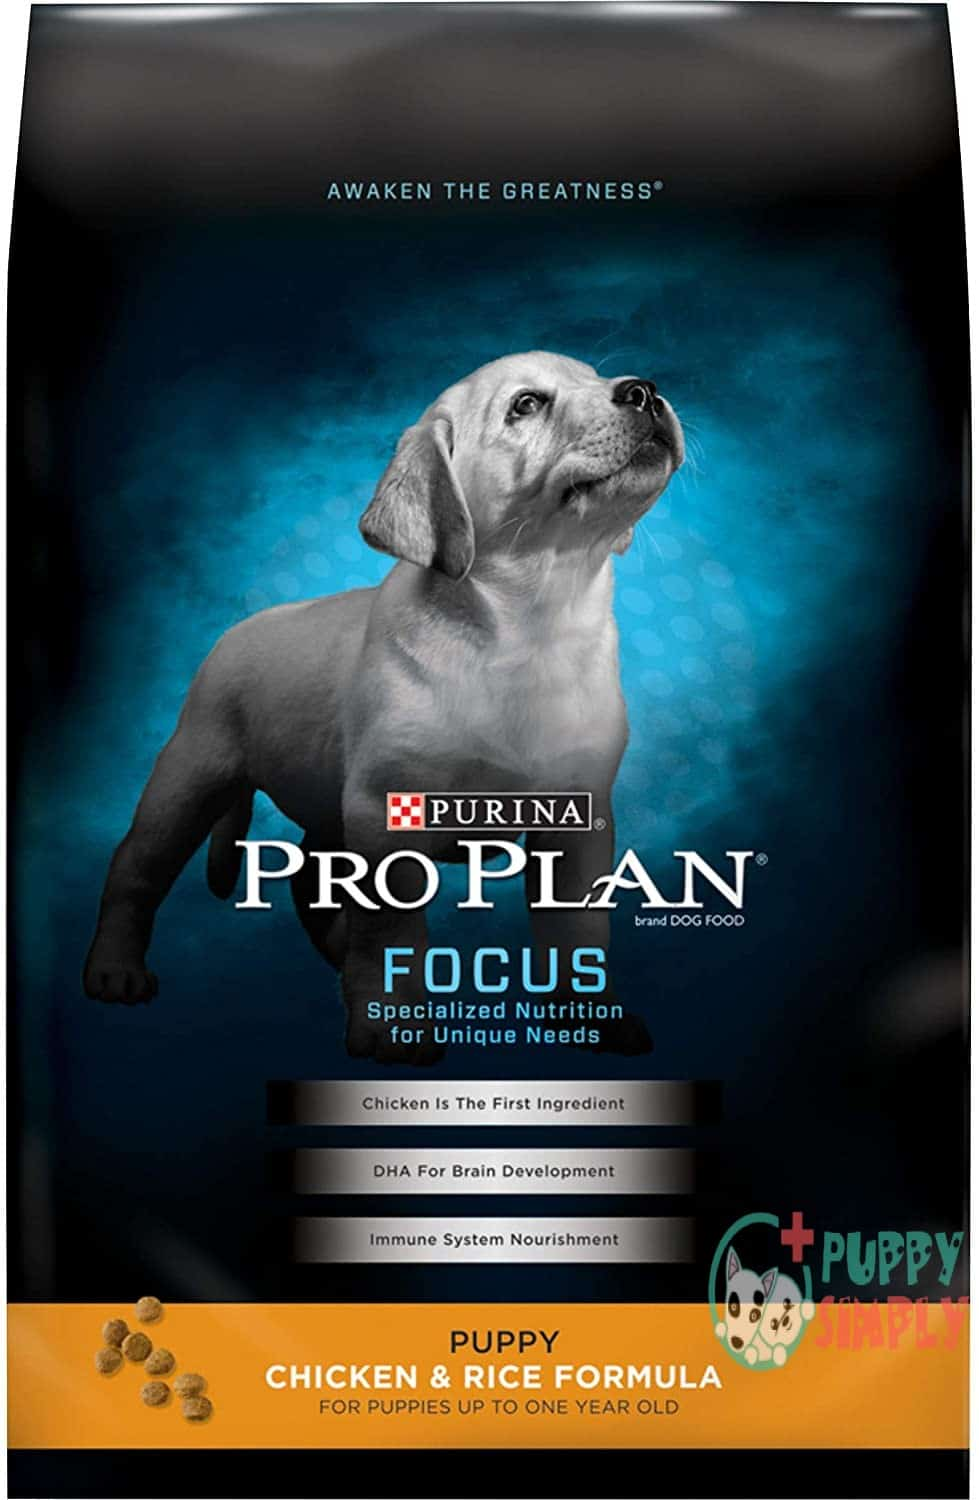 Purina Pro Plan Dry Kibble Puppy Food for Goldendoodles